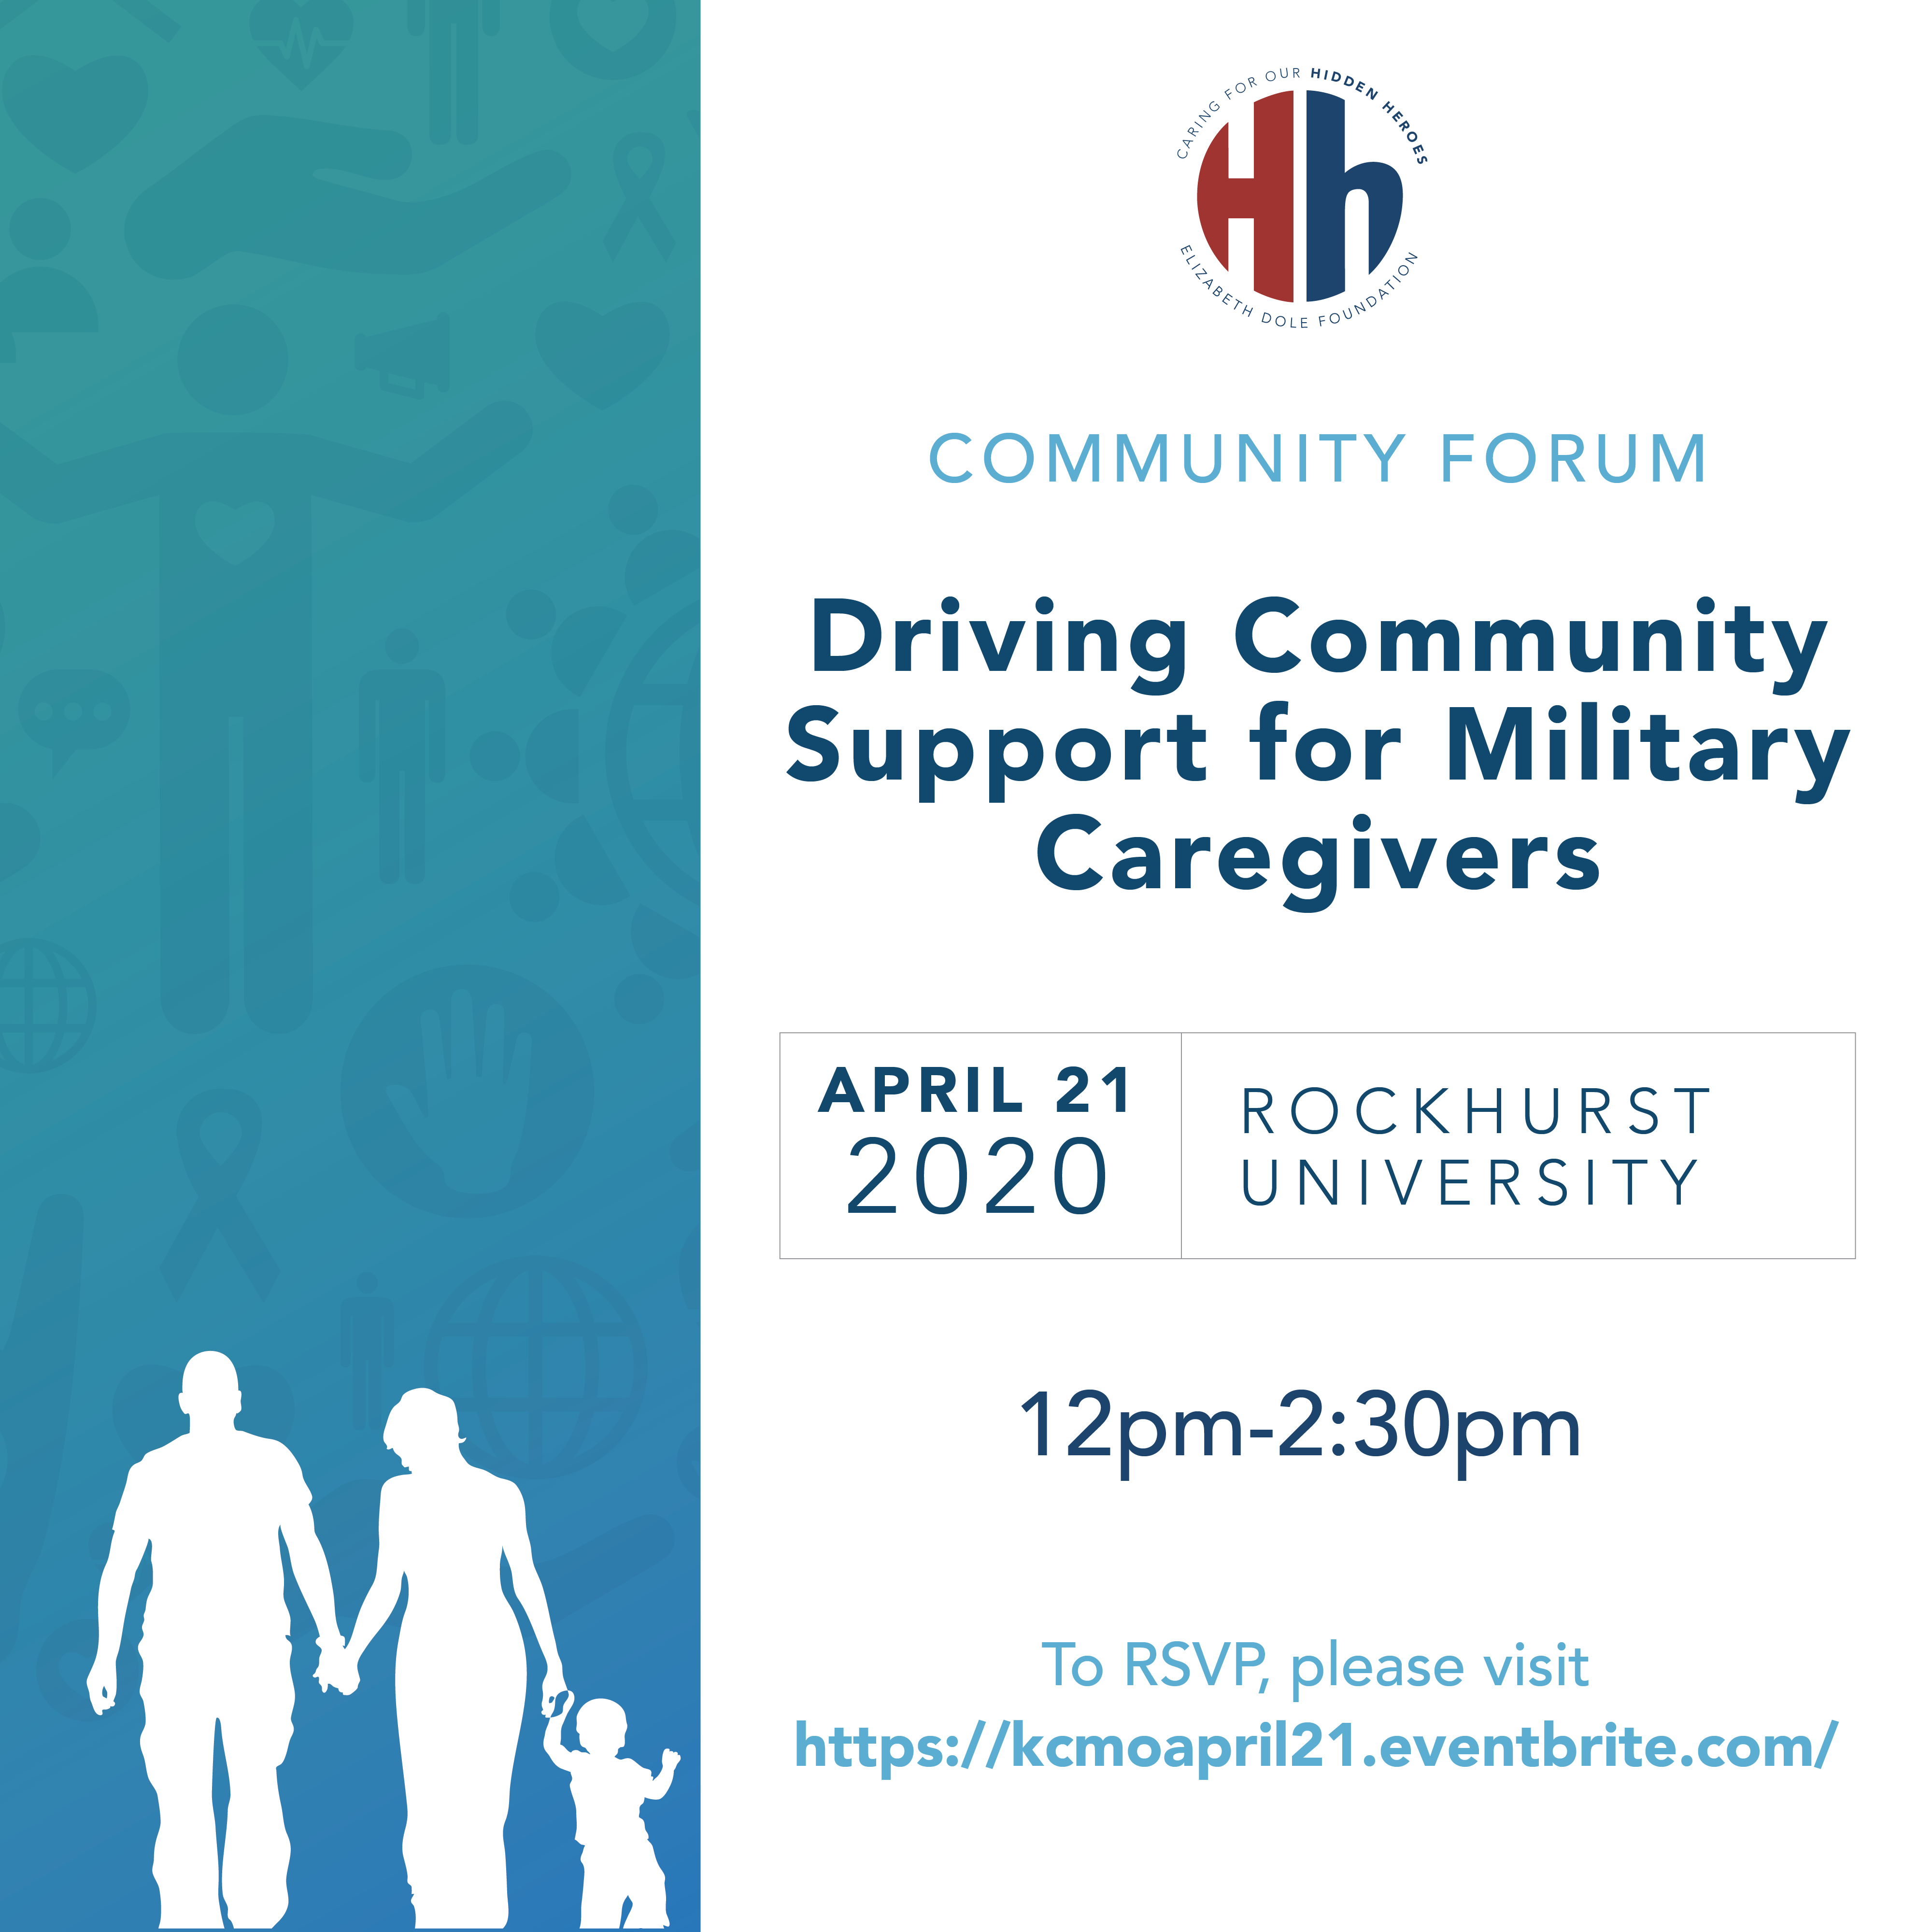 Come and Join us for a Community Forum